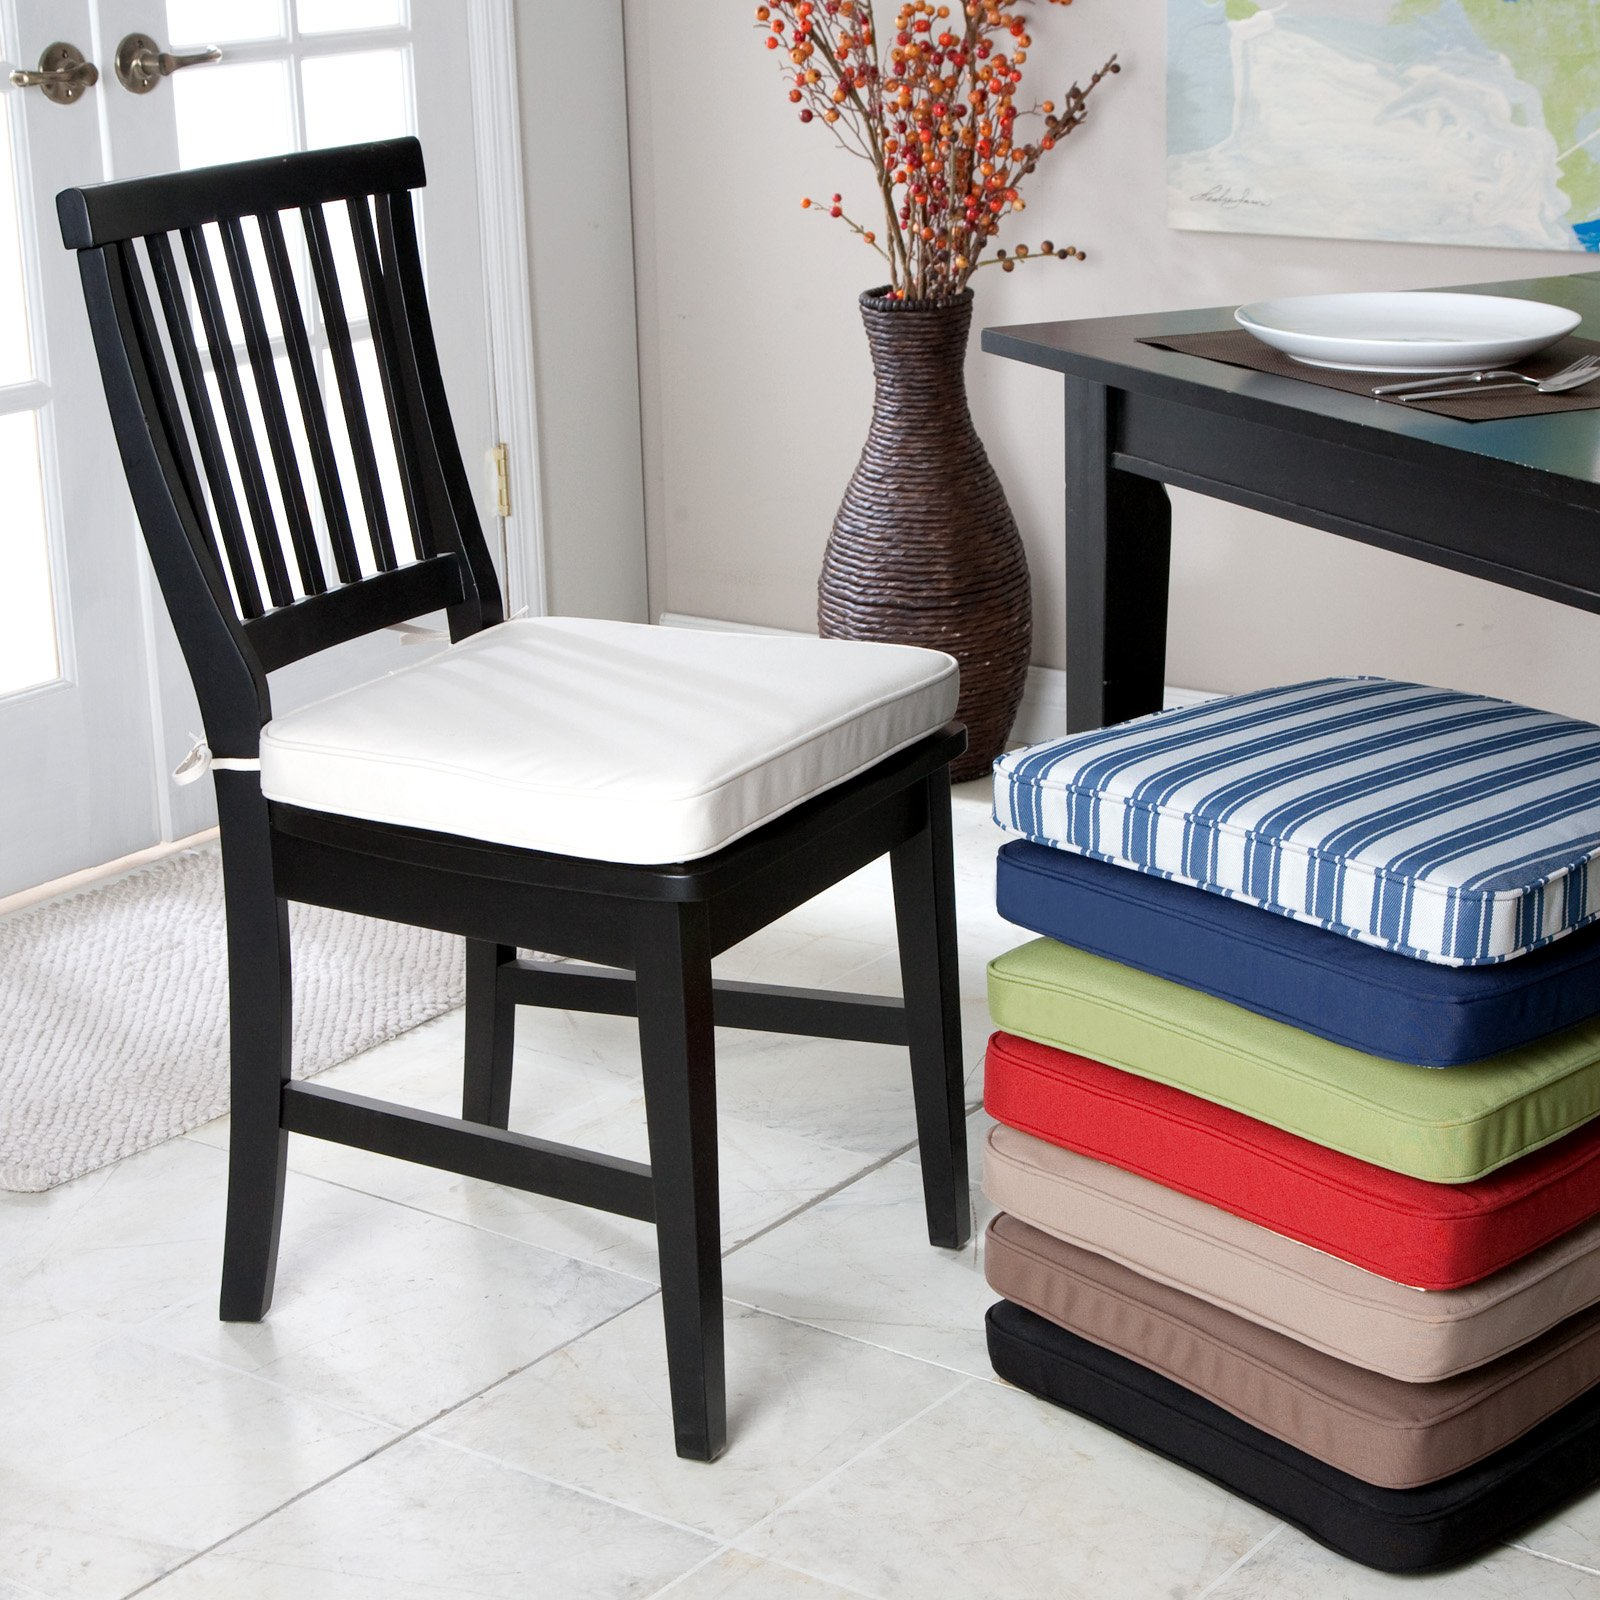 Seat Cushion For Dining Room Chairs Washable Seat Covers  : cushions for dining room chairs 1 from daphman.com size 1600 x 1600 jpeg 404kB